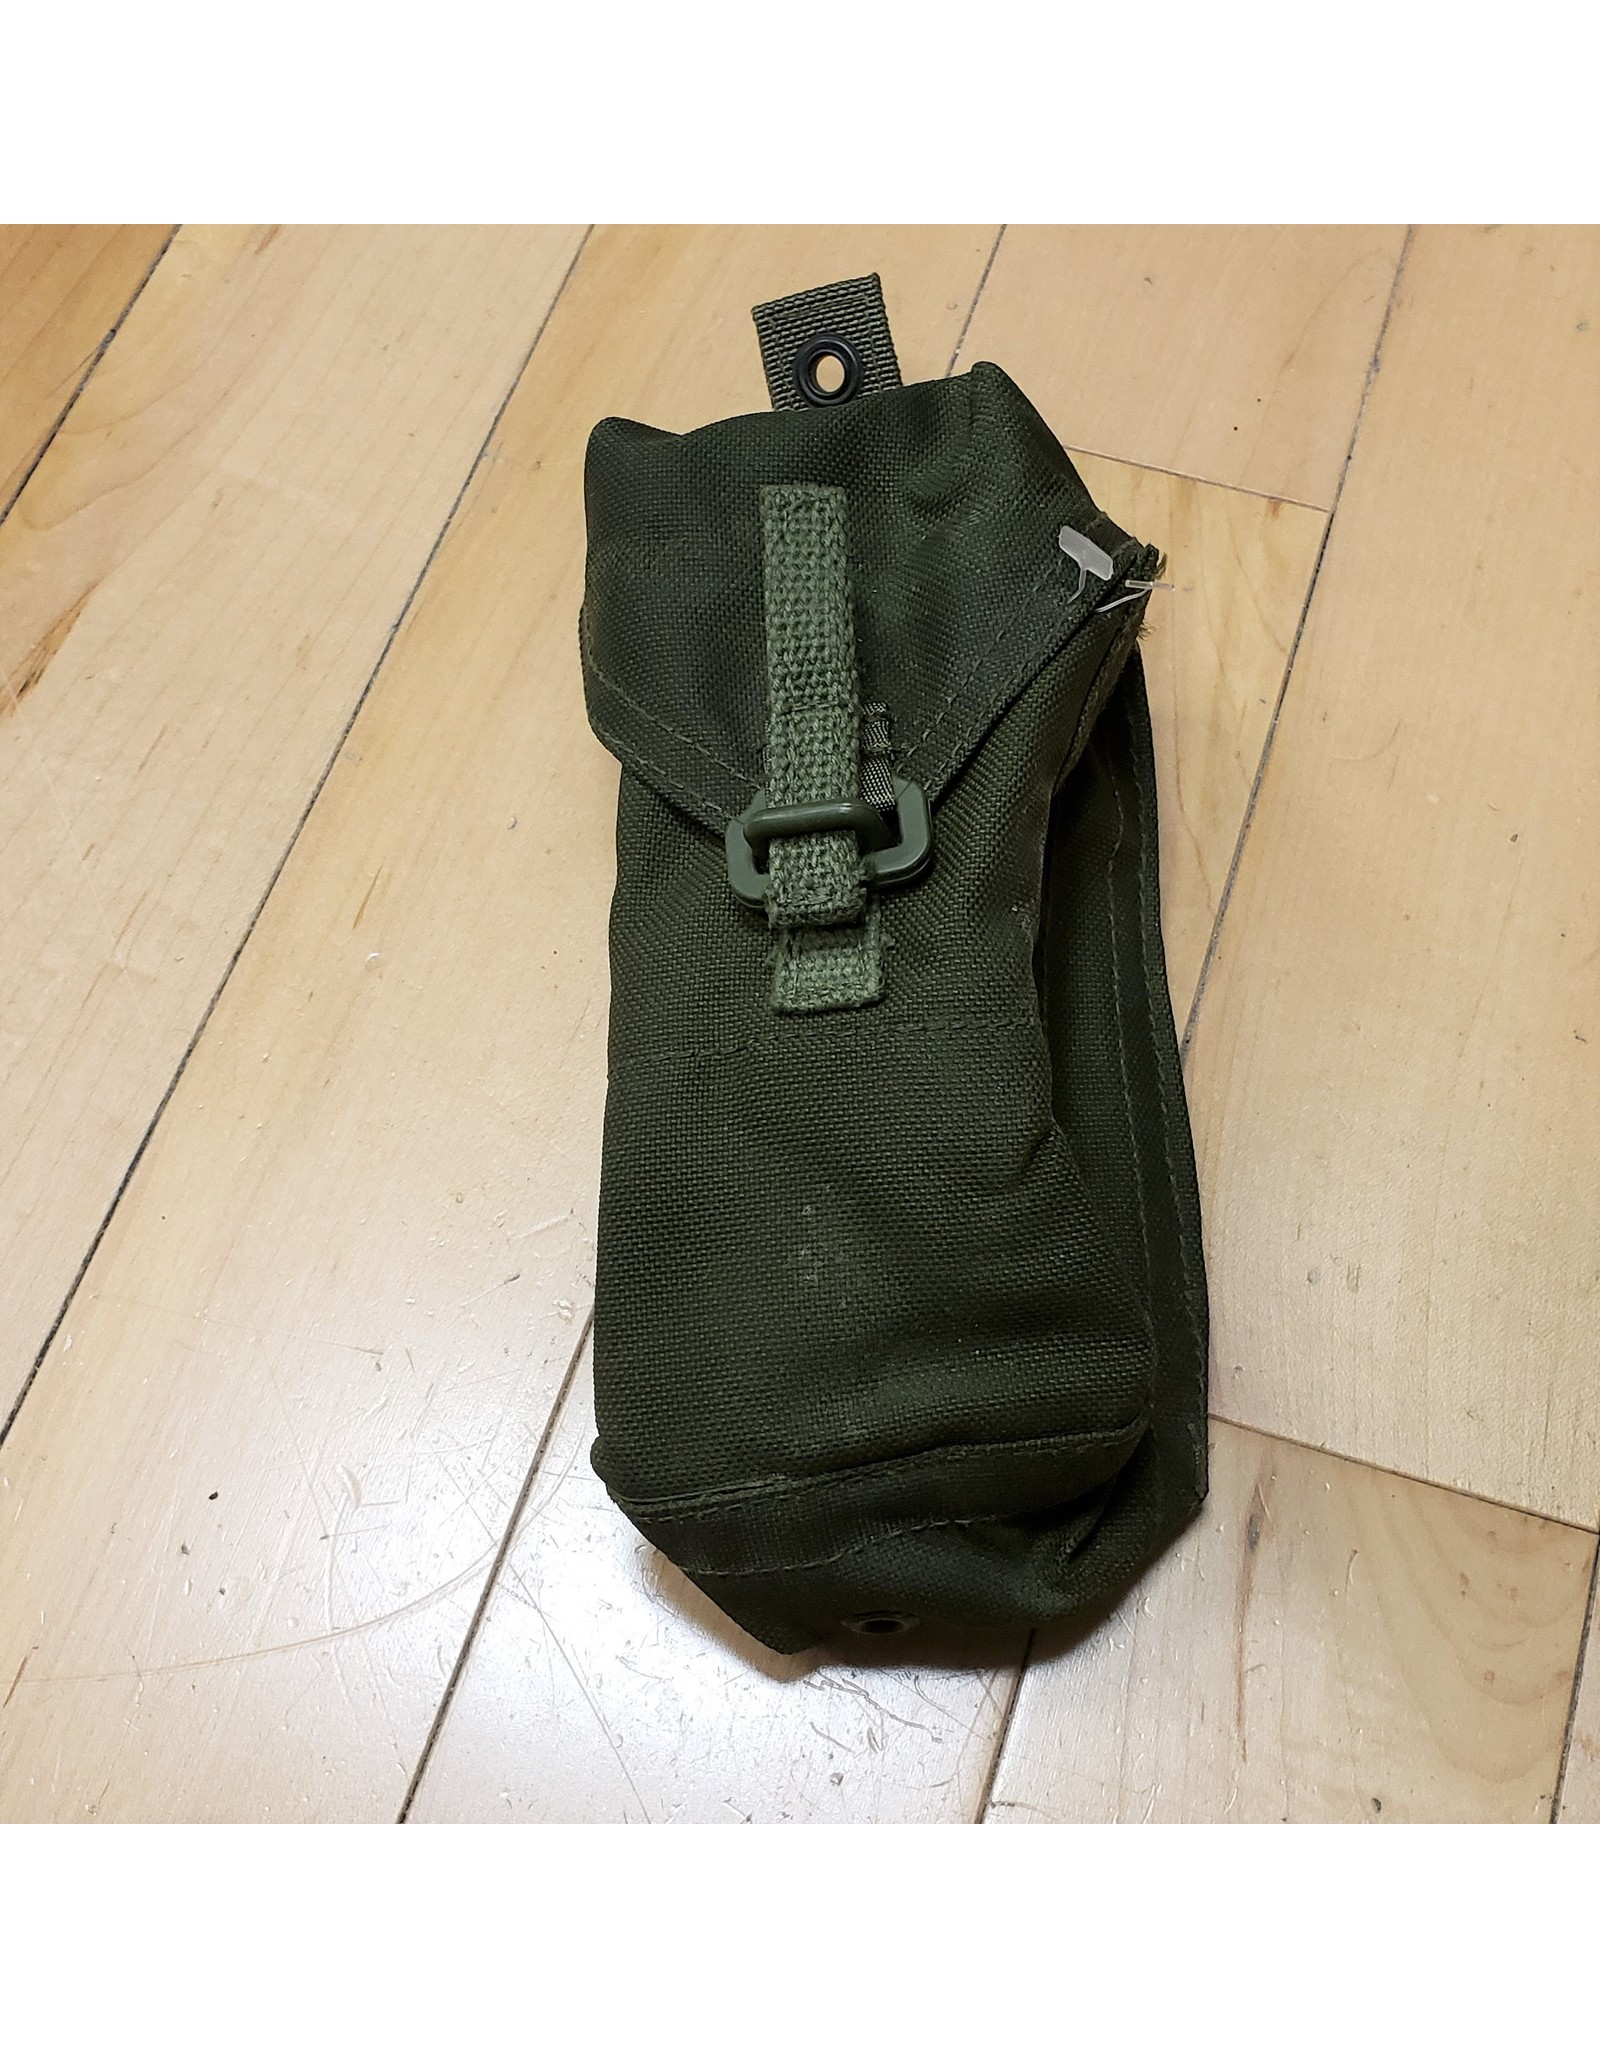 SURPLUS CANADIAN AMMO POUCH 82 PATTERN -OLIVE